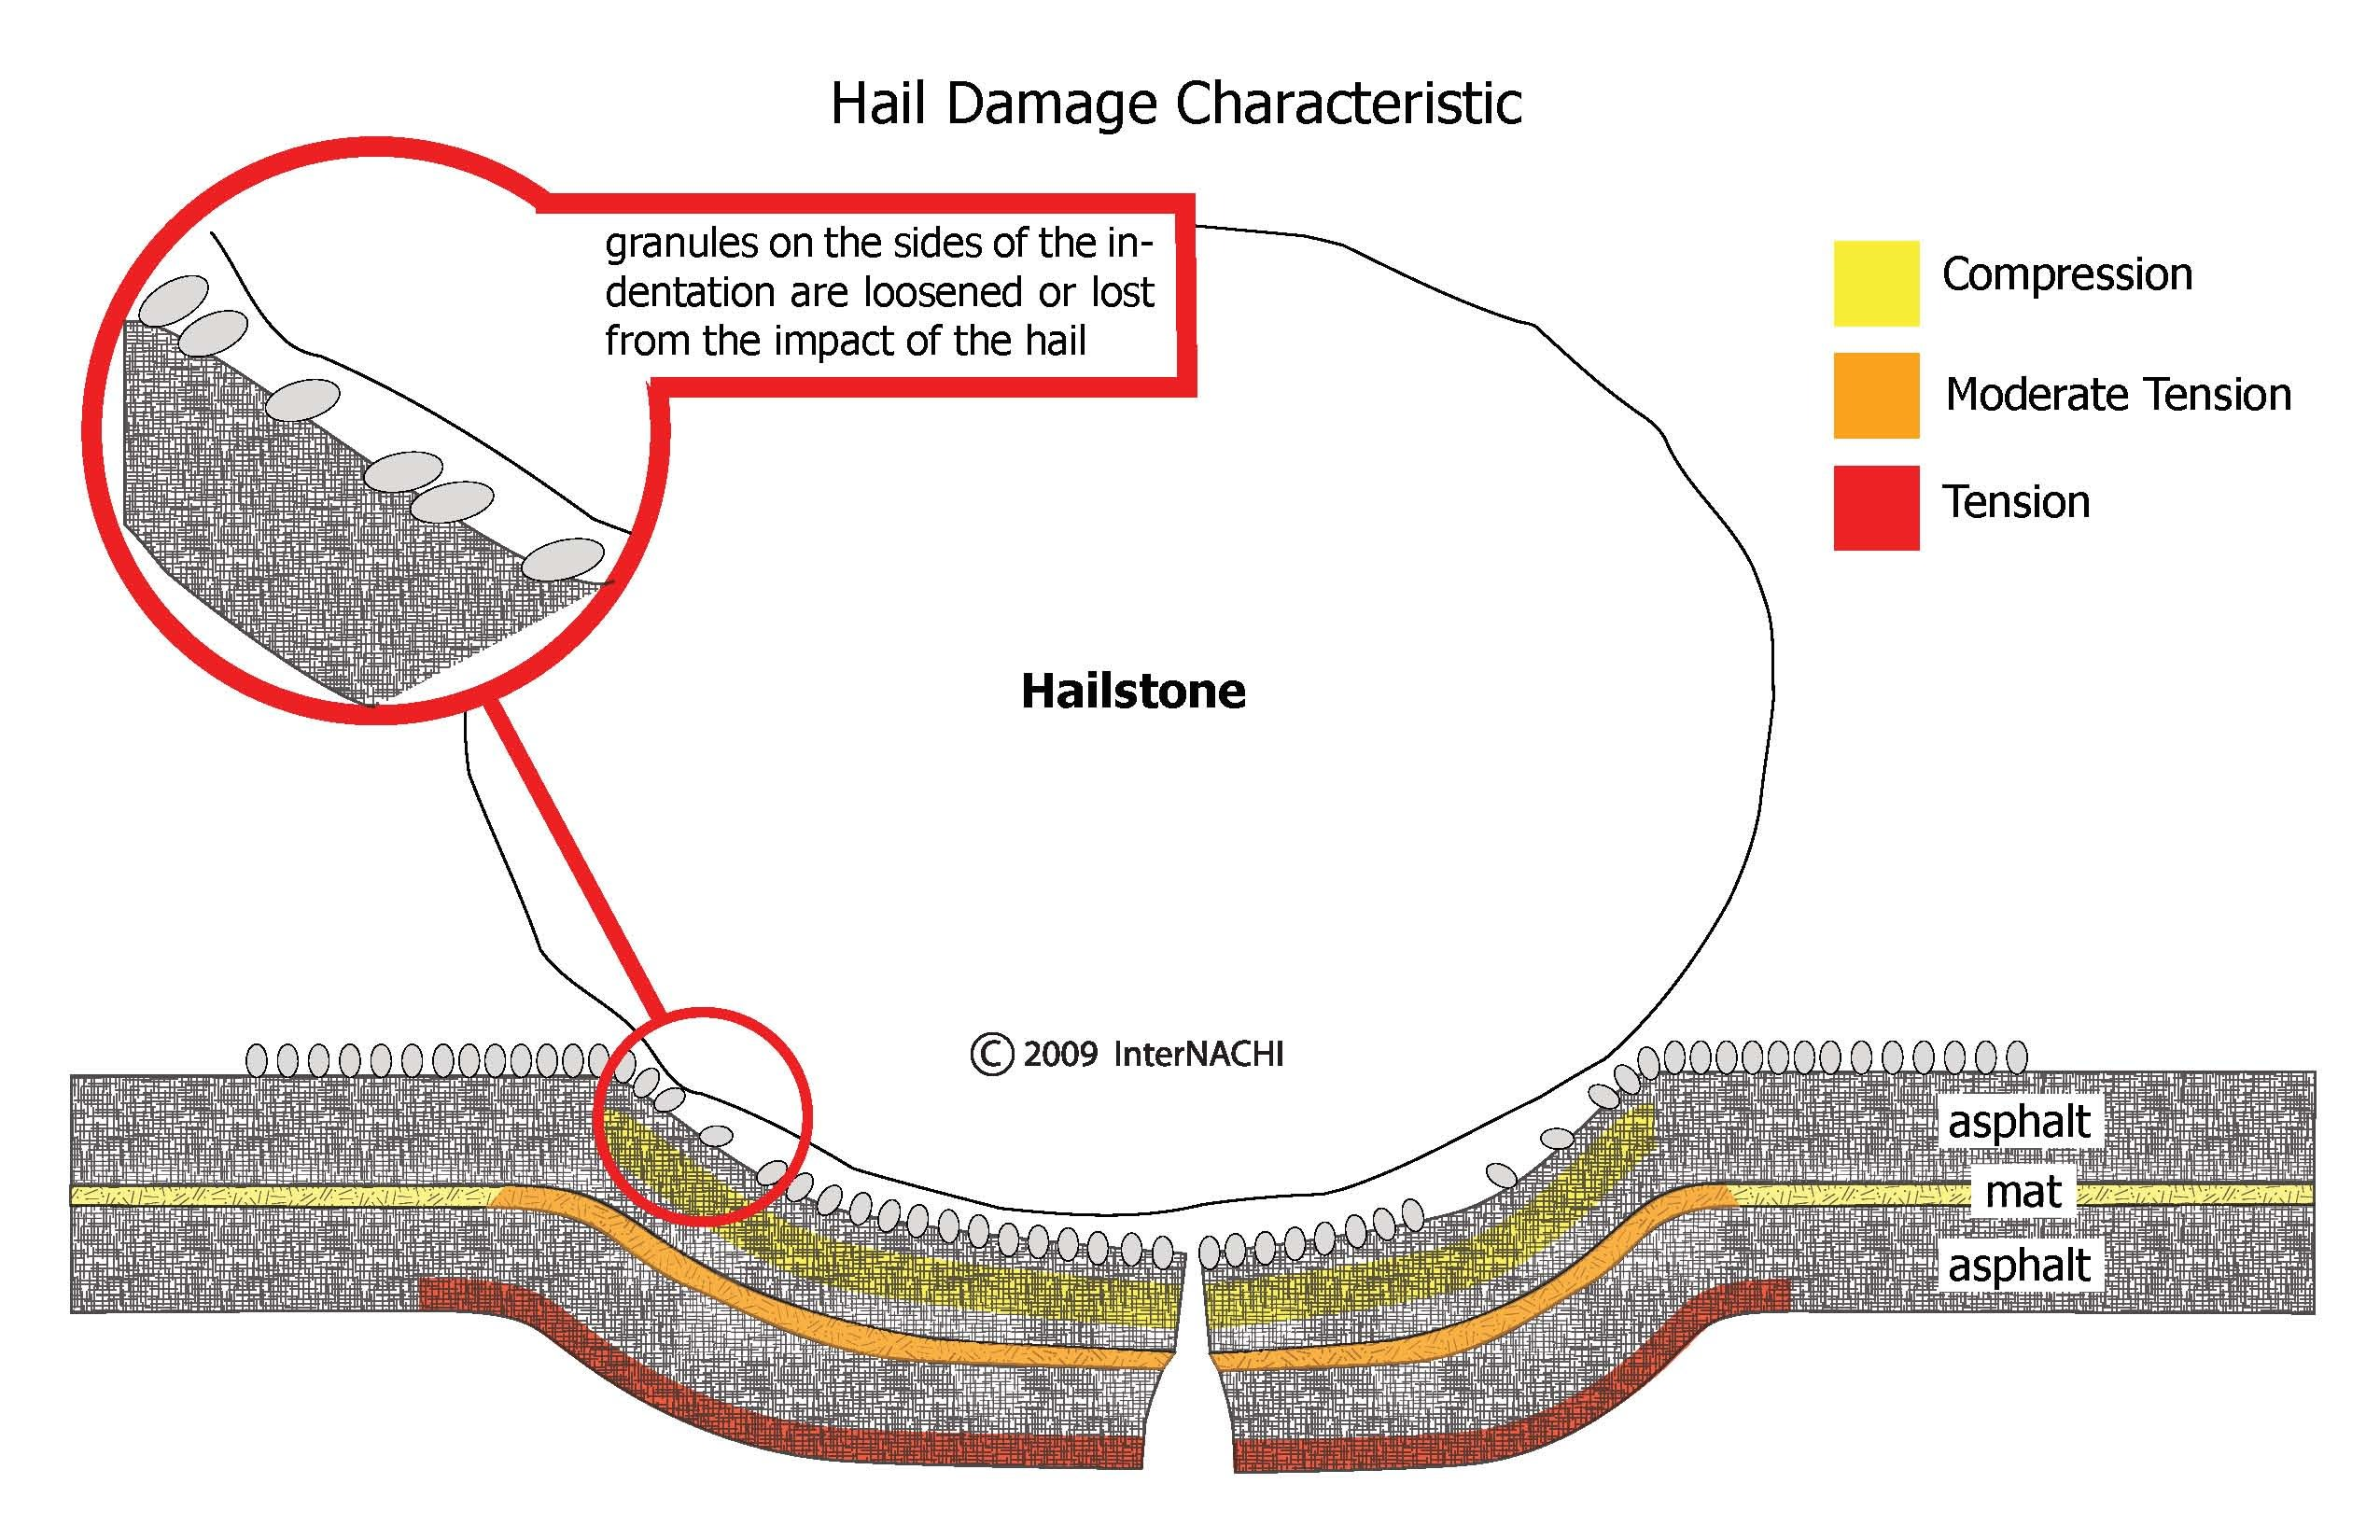 Hail damage characteristic.